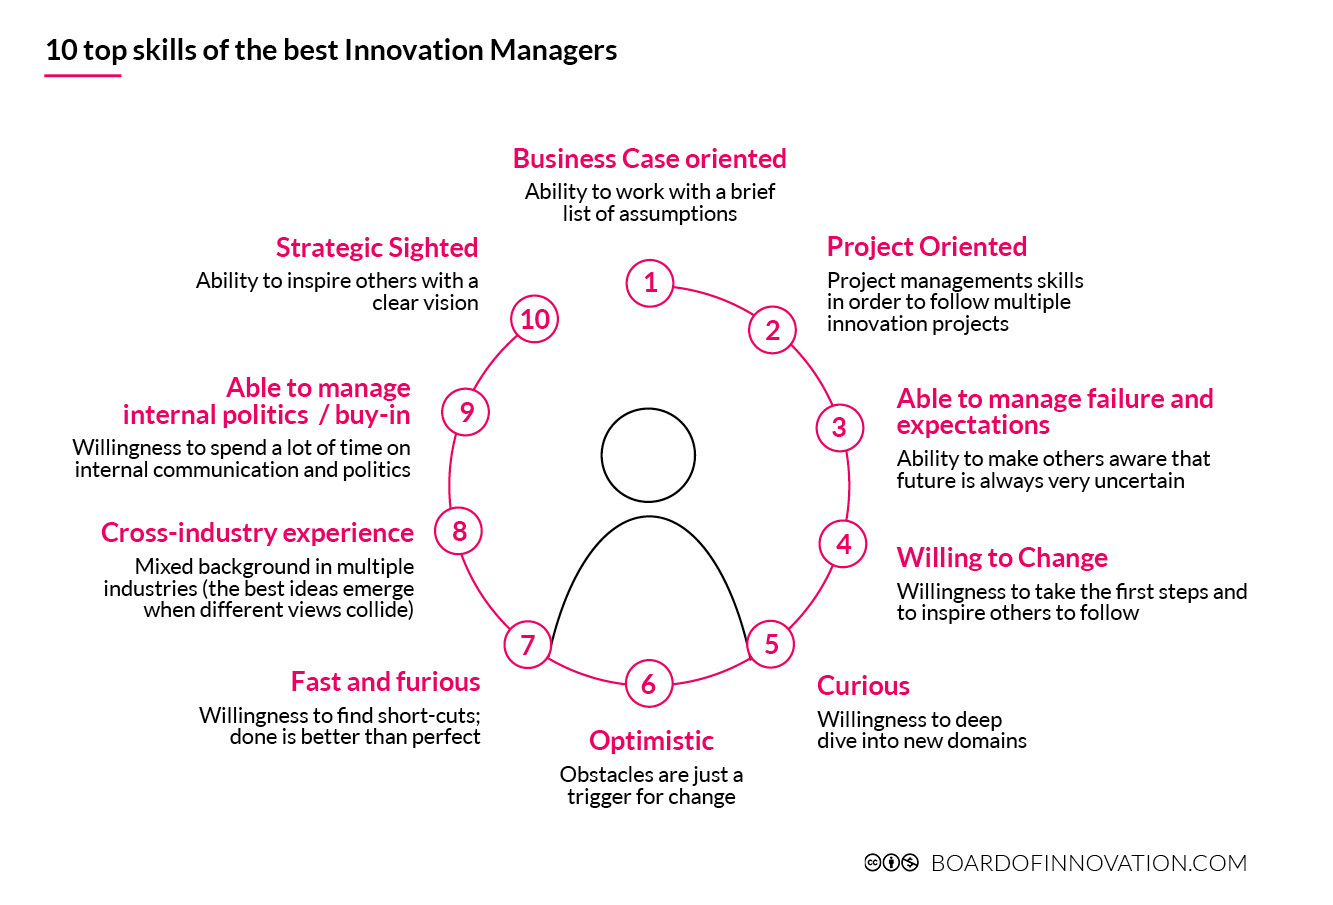 10-top-skills-of-the-best-Innovation-Managers-web.jpg